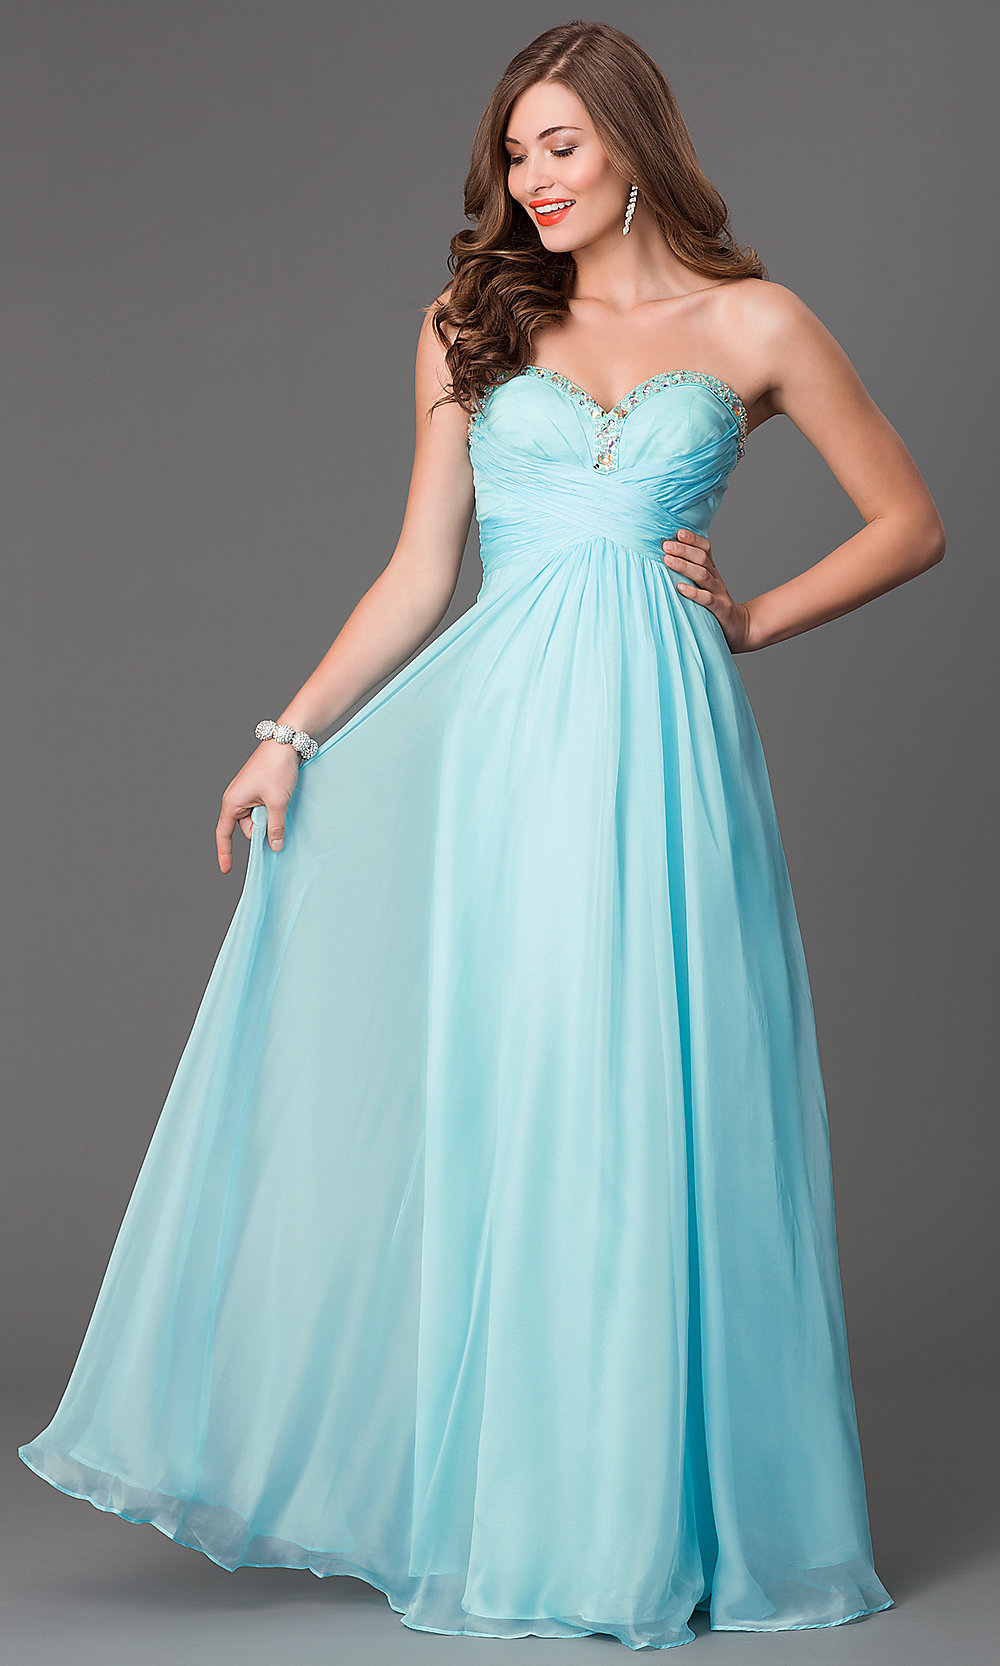 Mint Green Prom Gowns, Strapless Prom Dresses